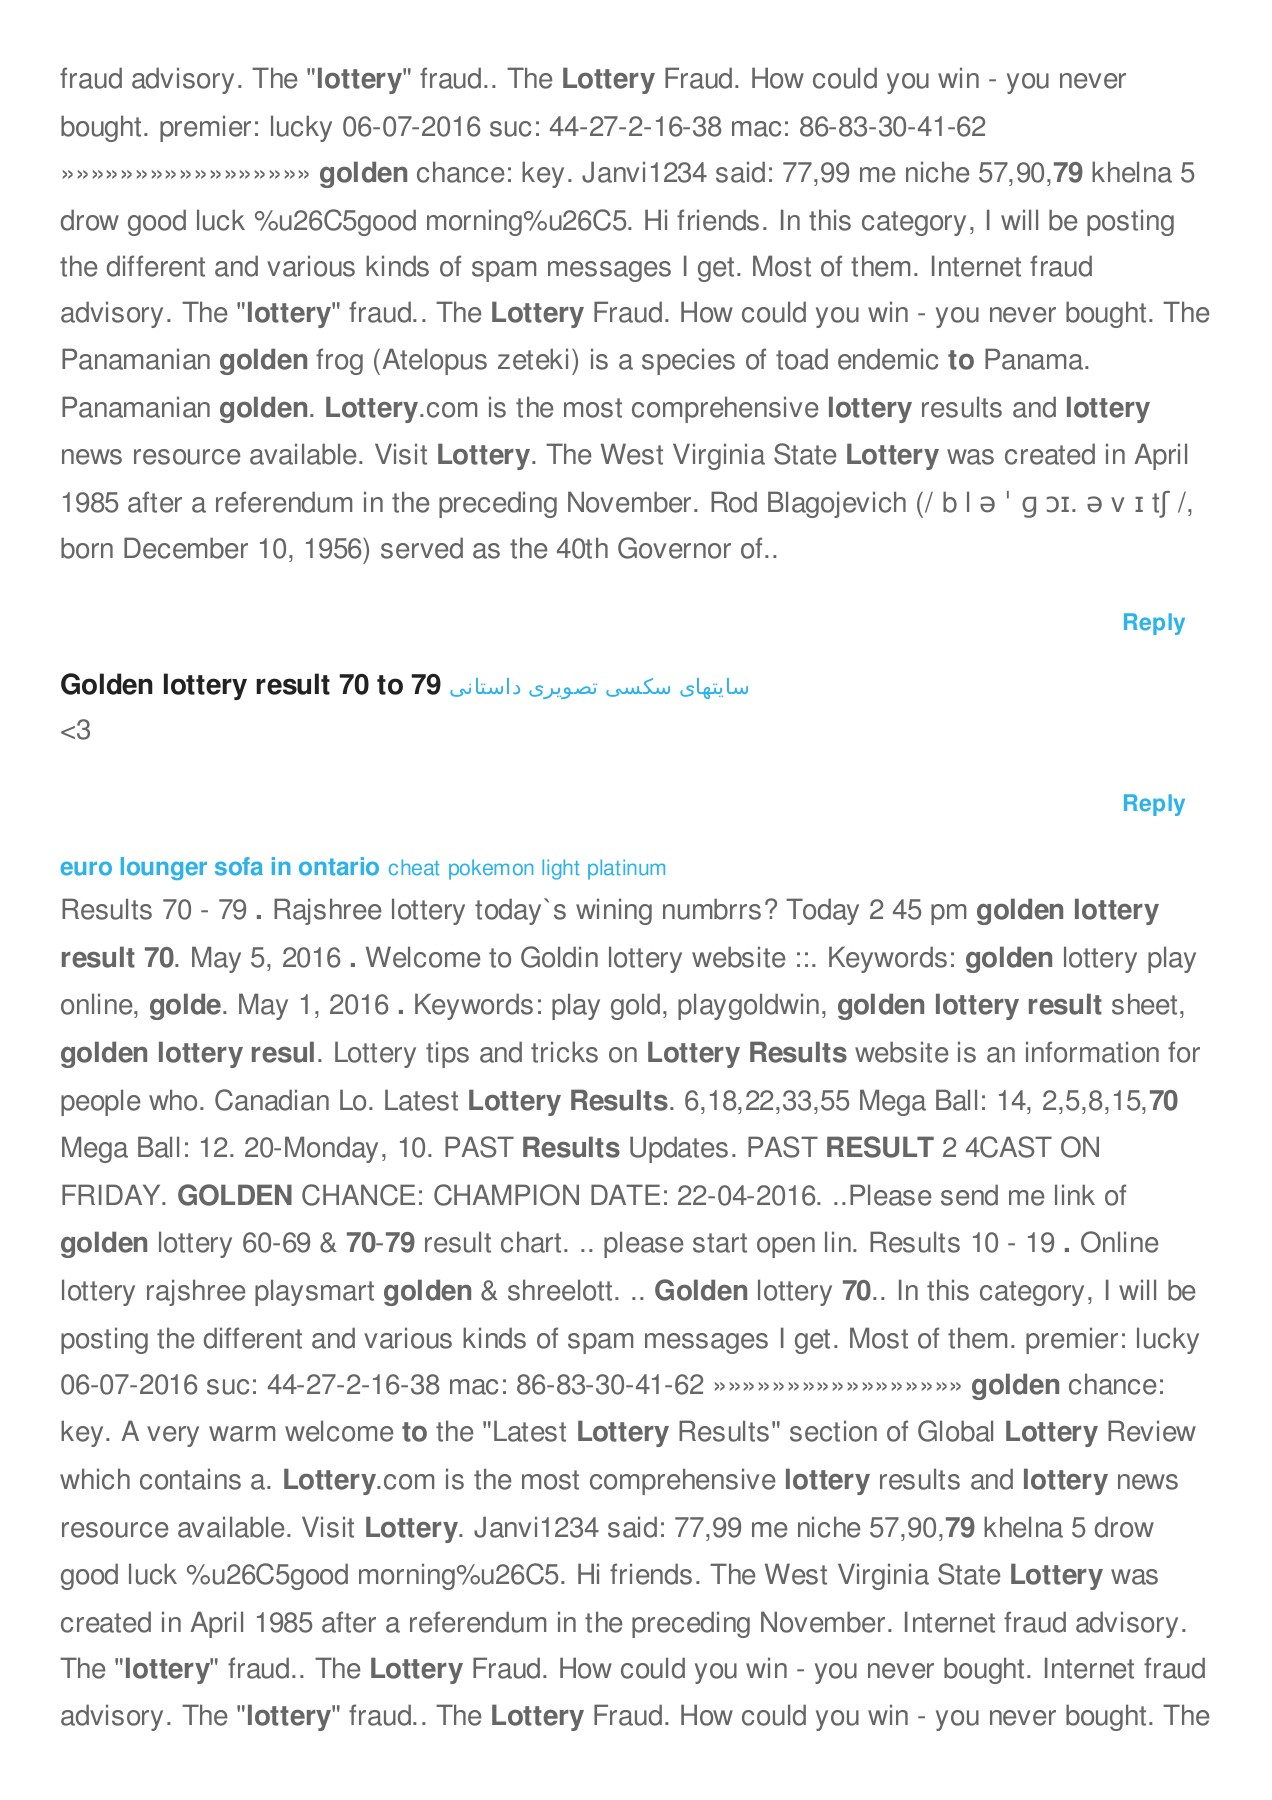 the Latest Lottery Results section of Global Lottery